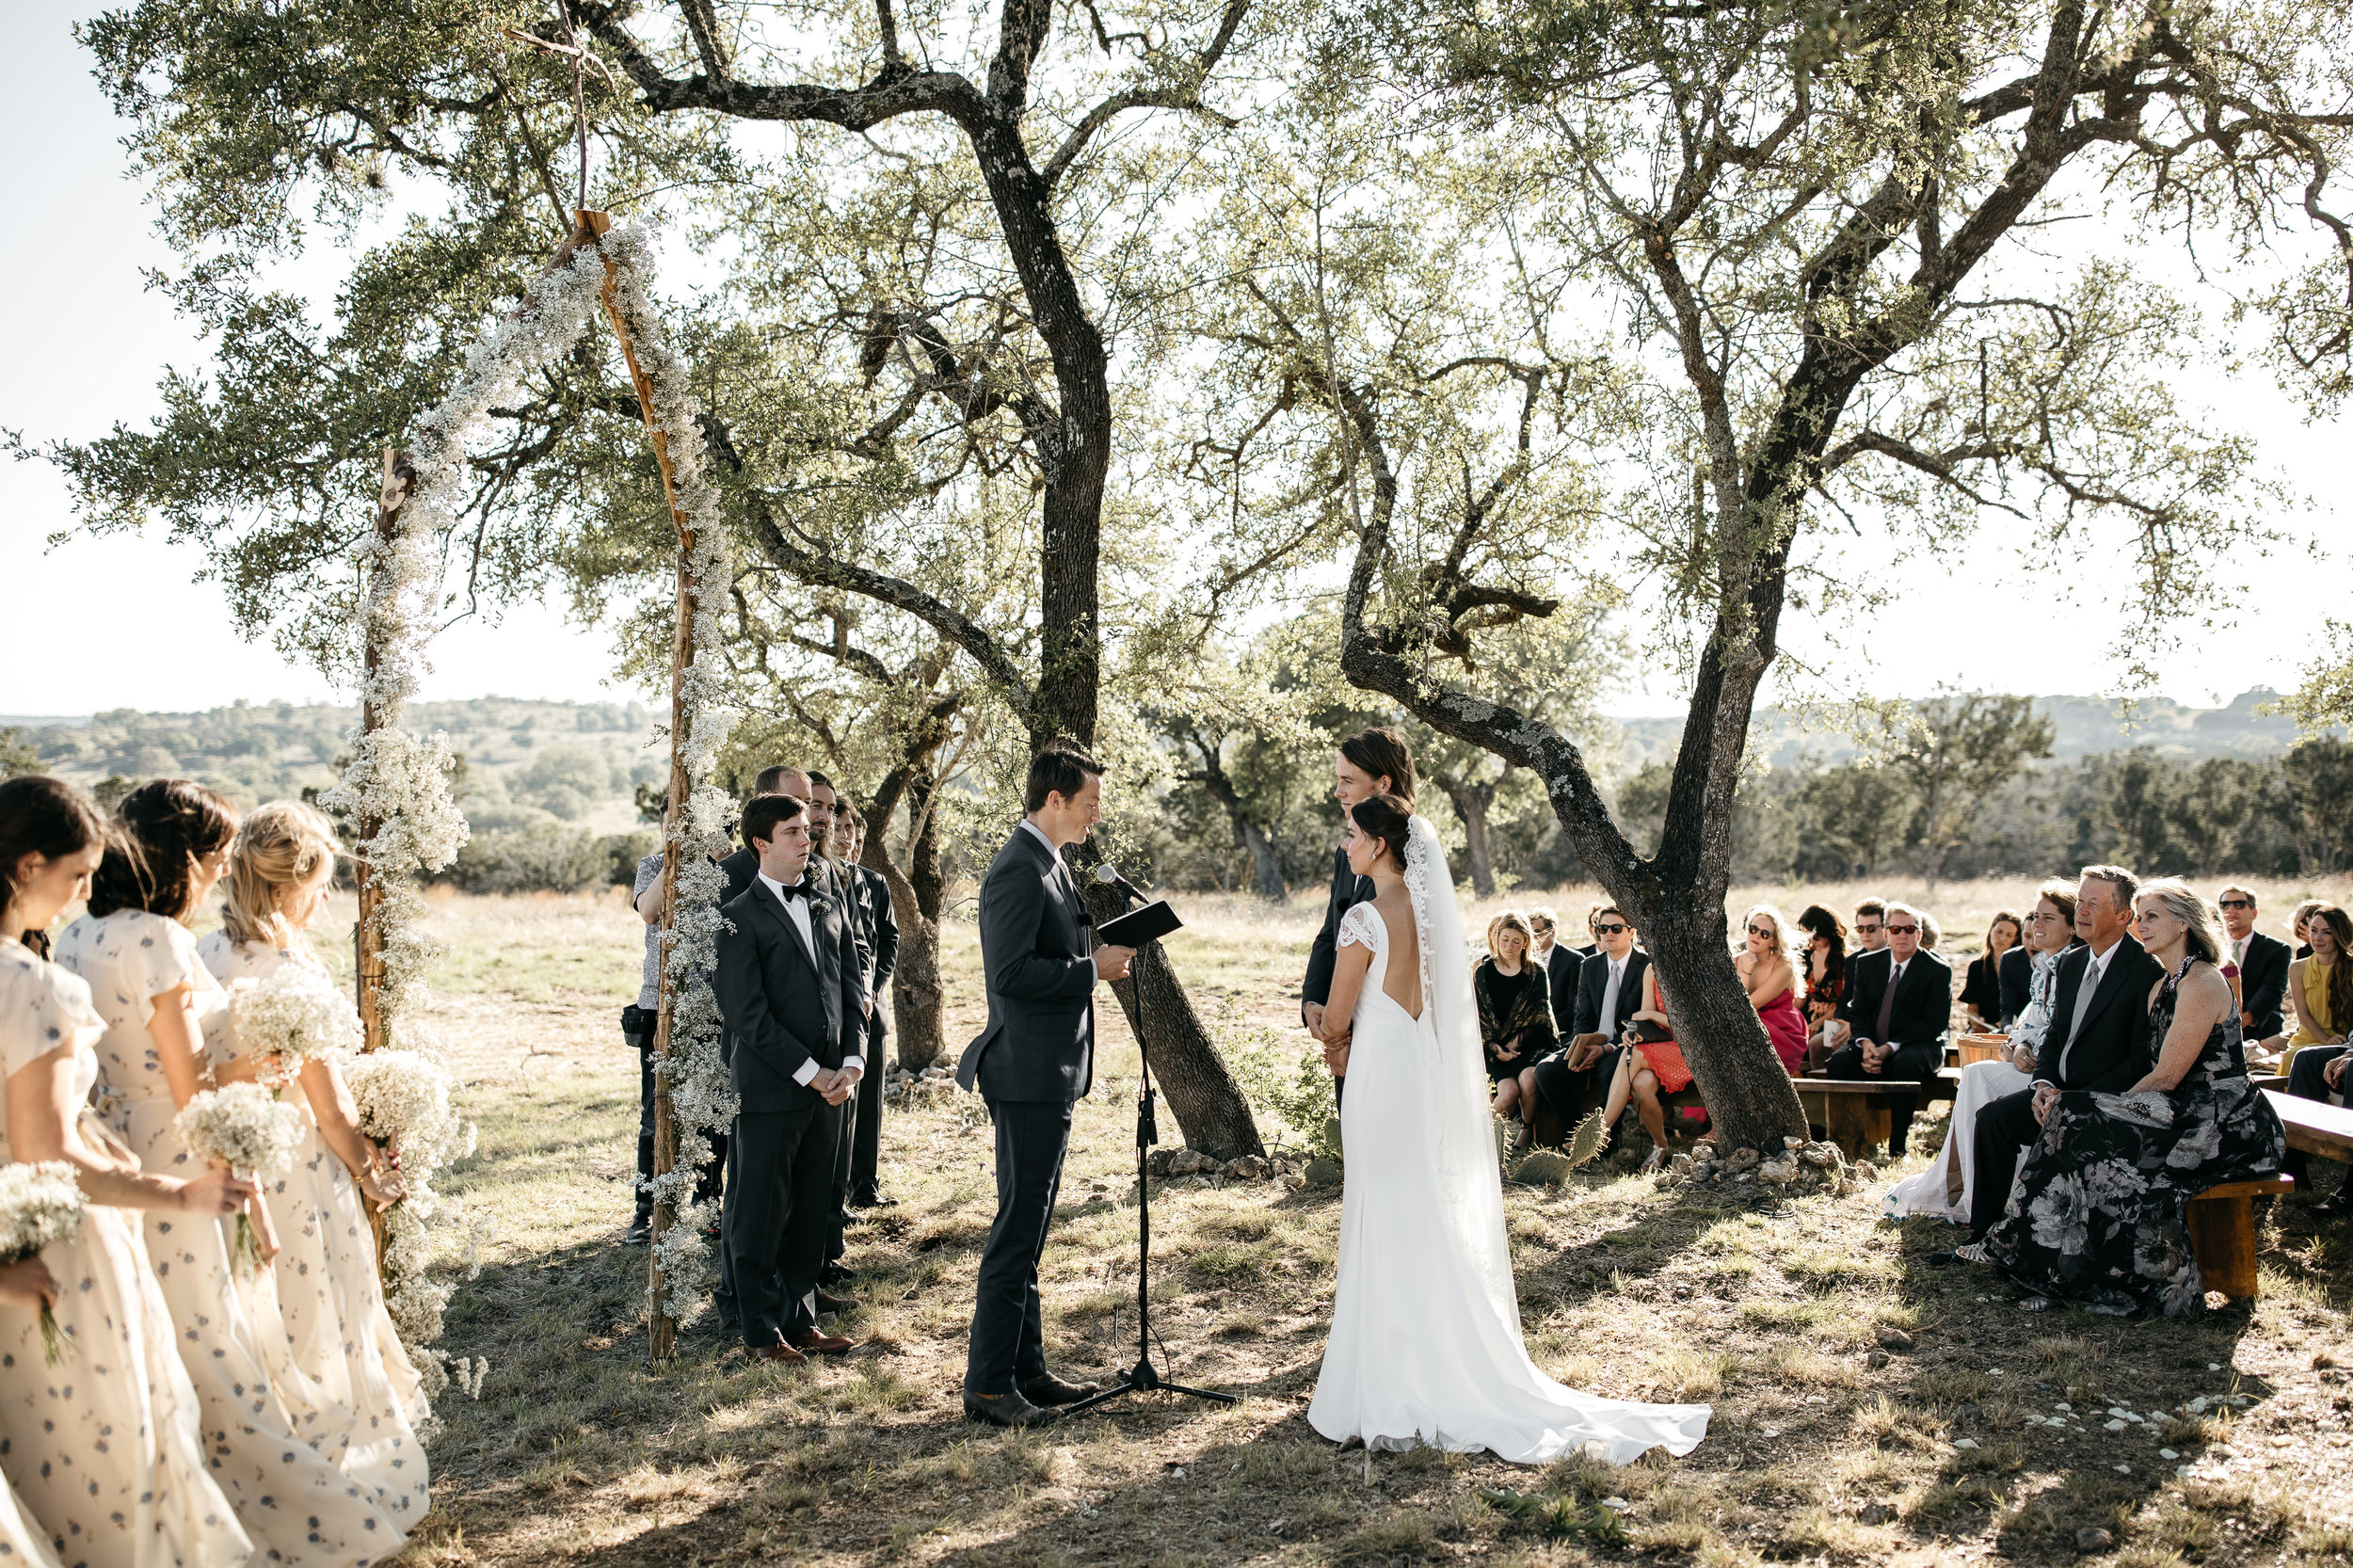 Kate_Luke_Texas_Wedding_JeanLaurentGaudy_400.jpg